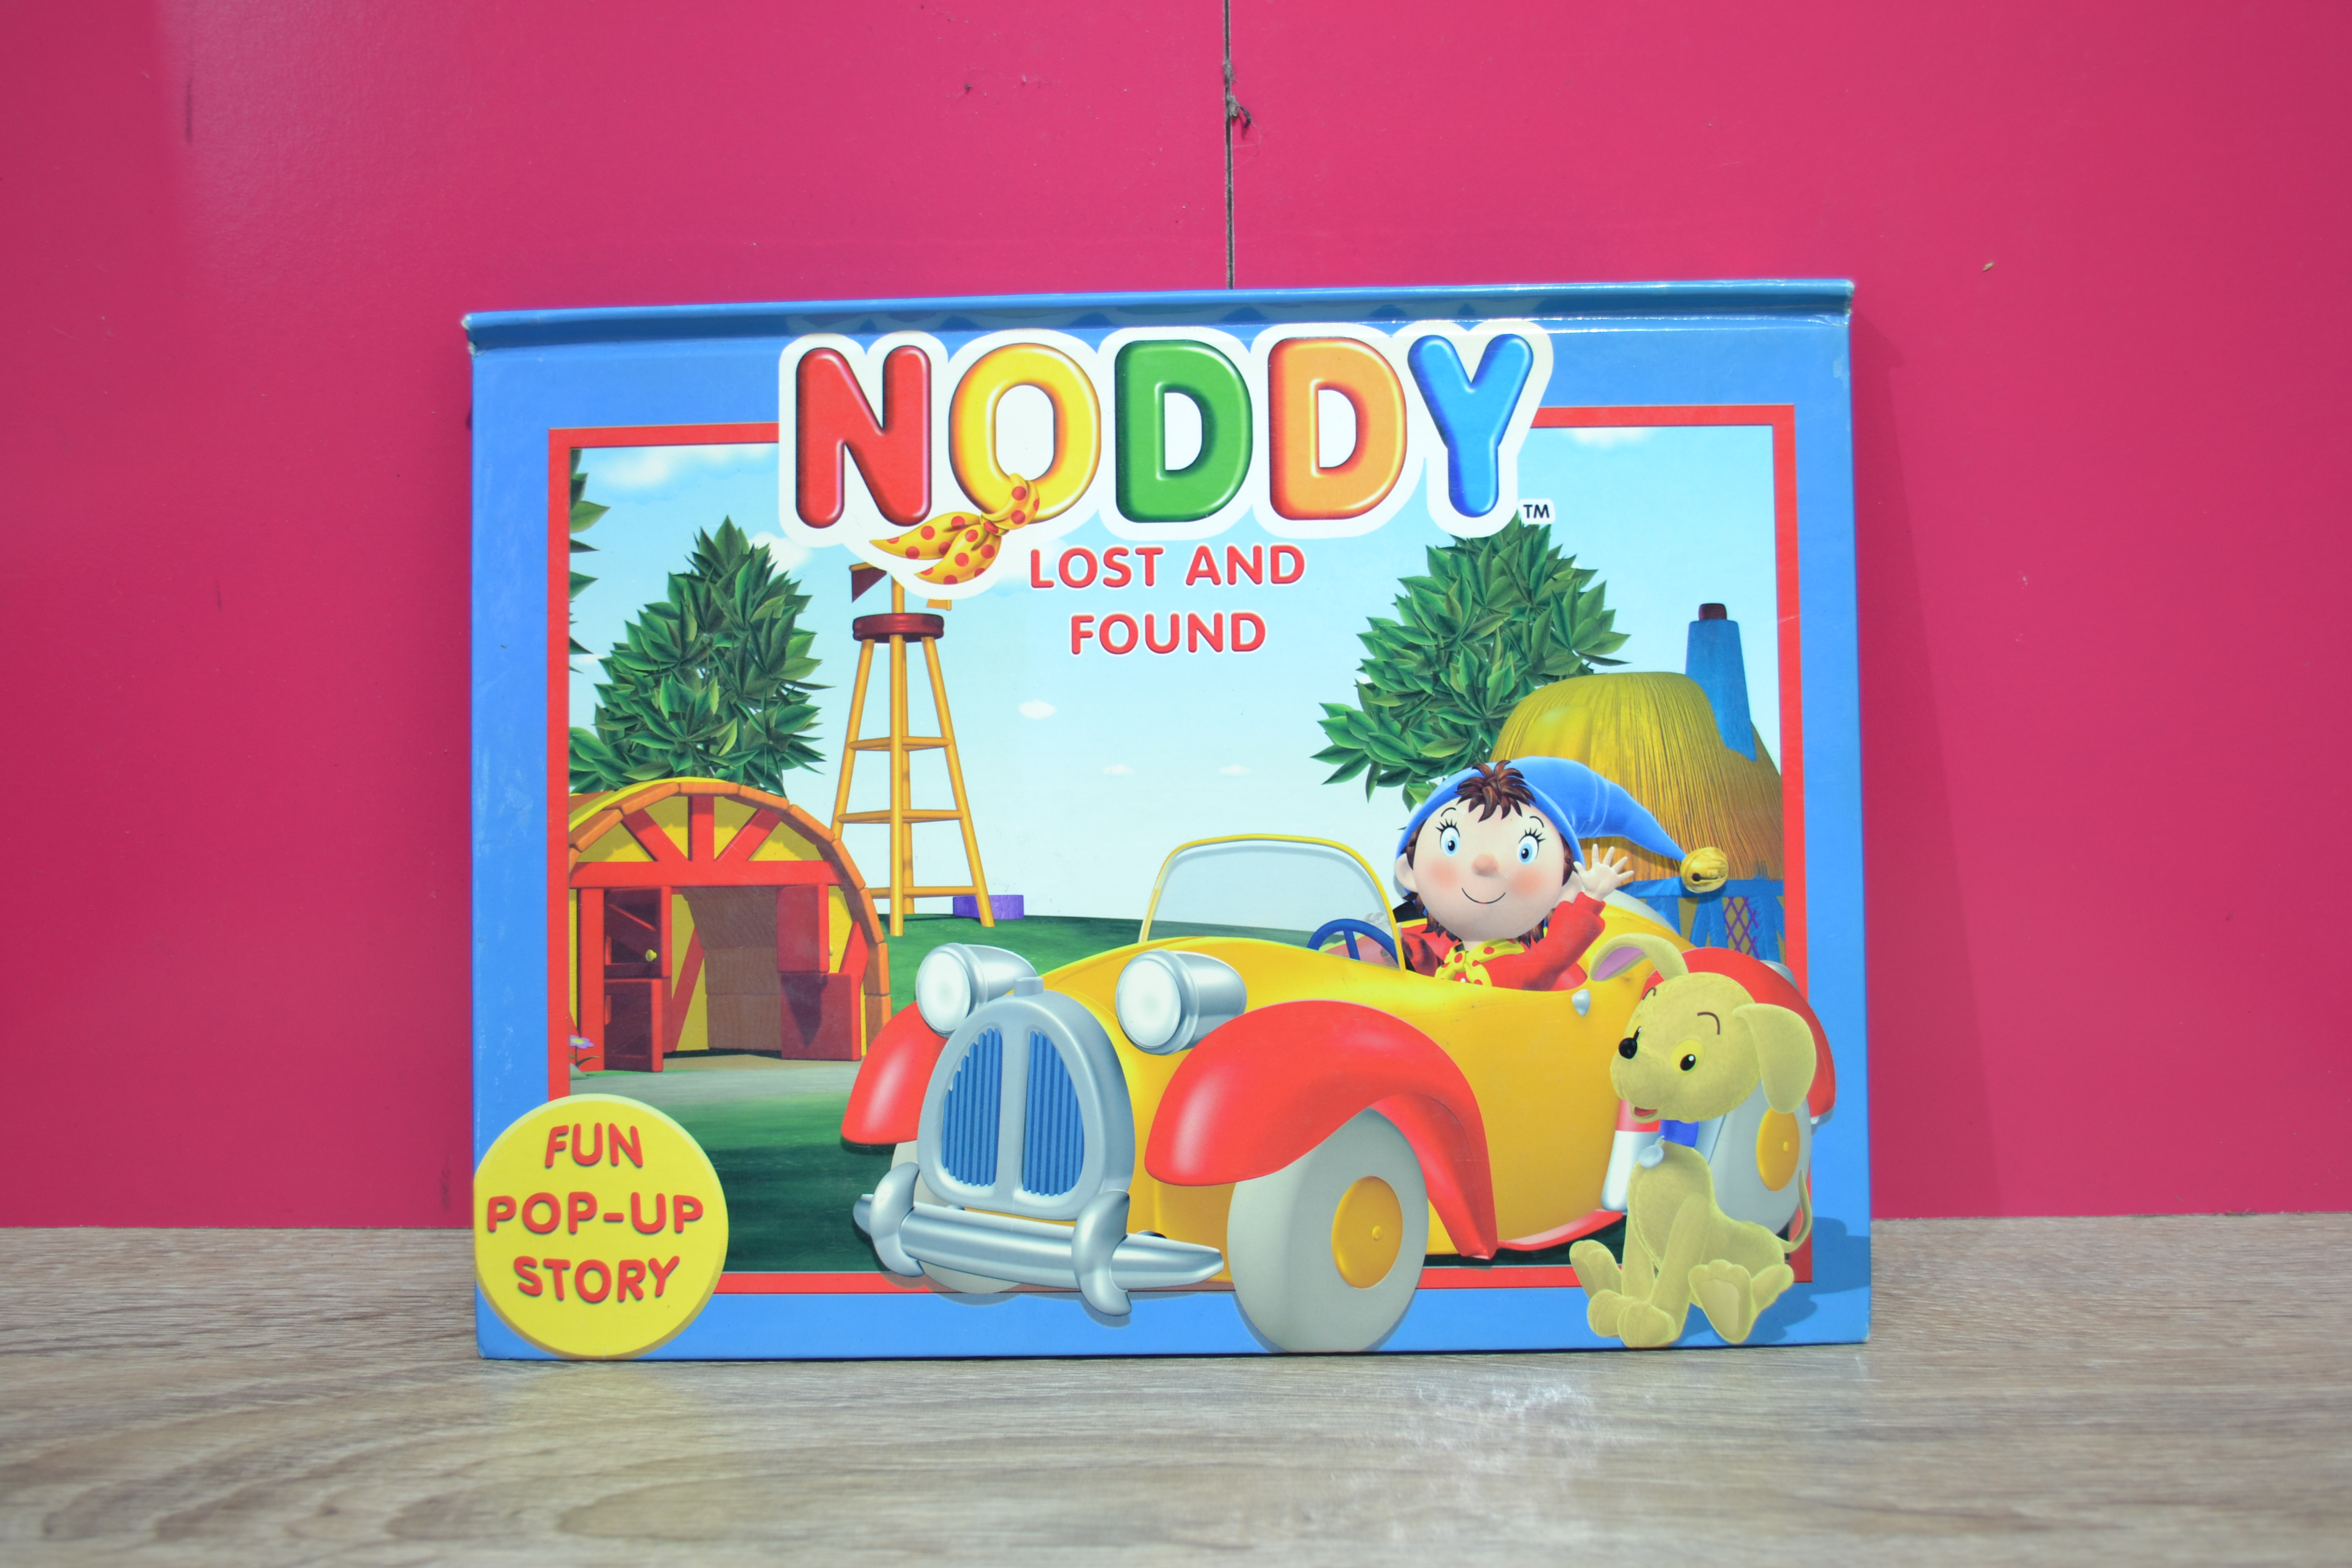 Noddy Lost and Found